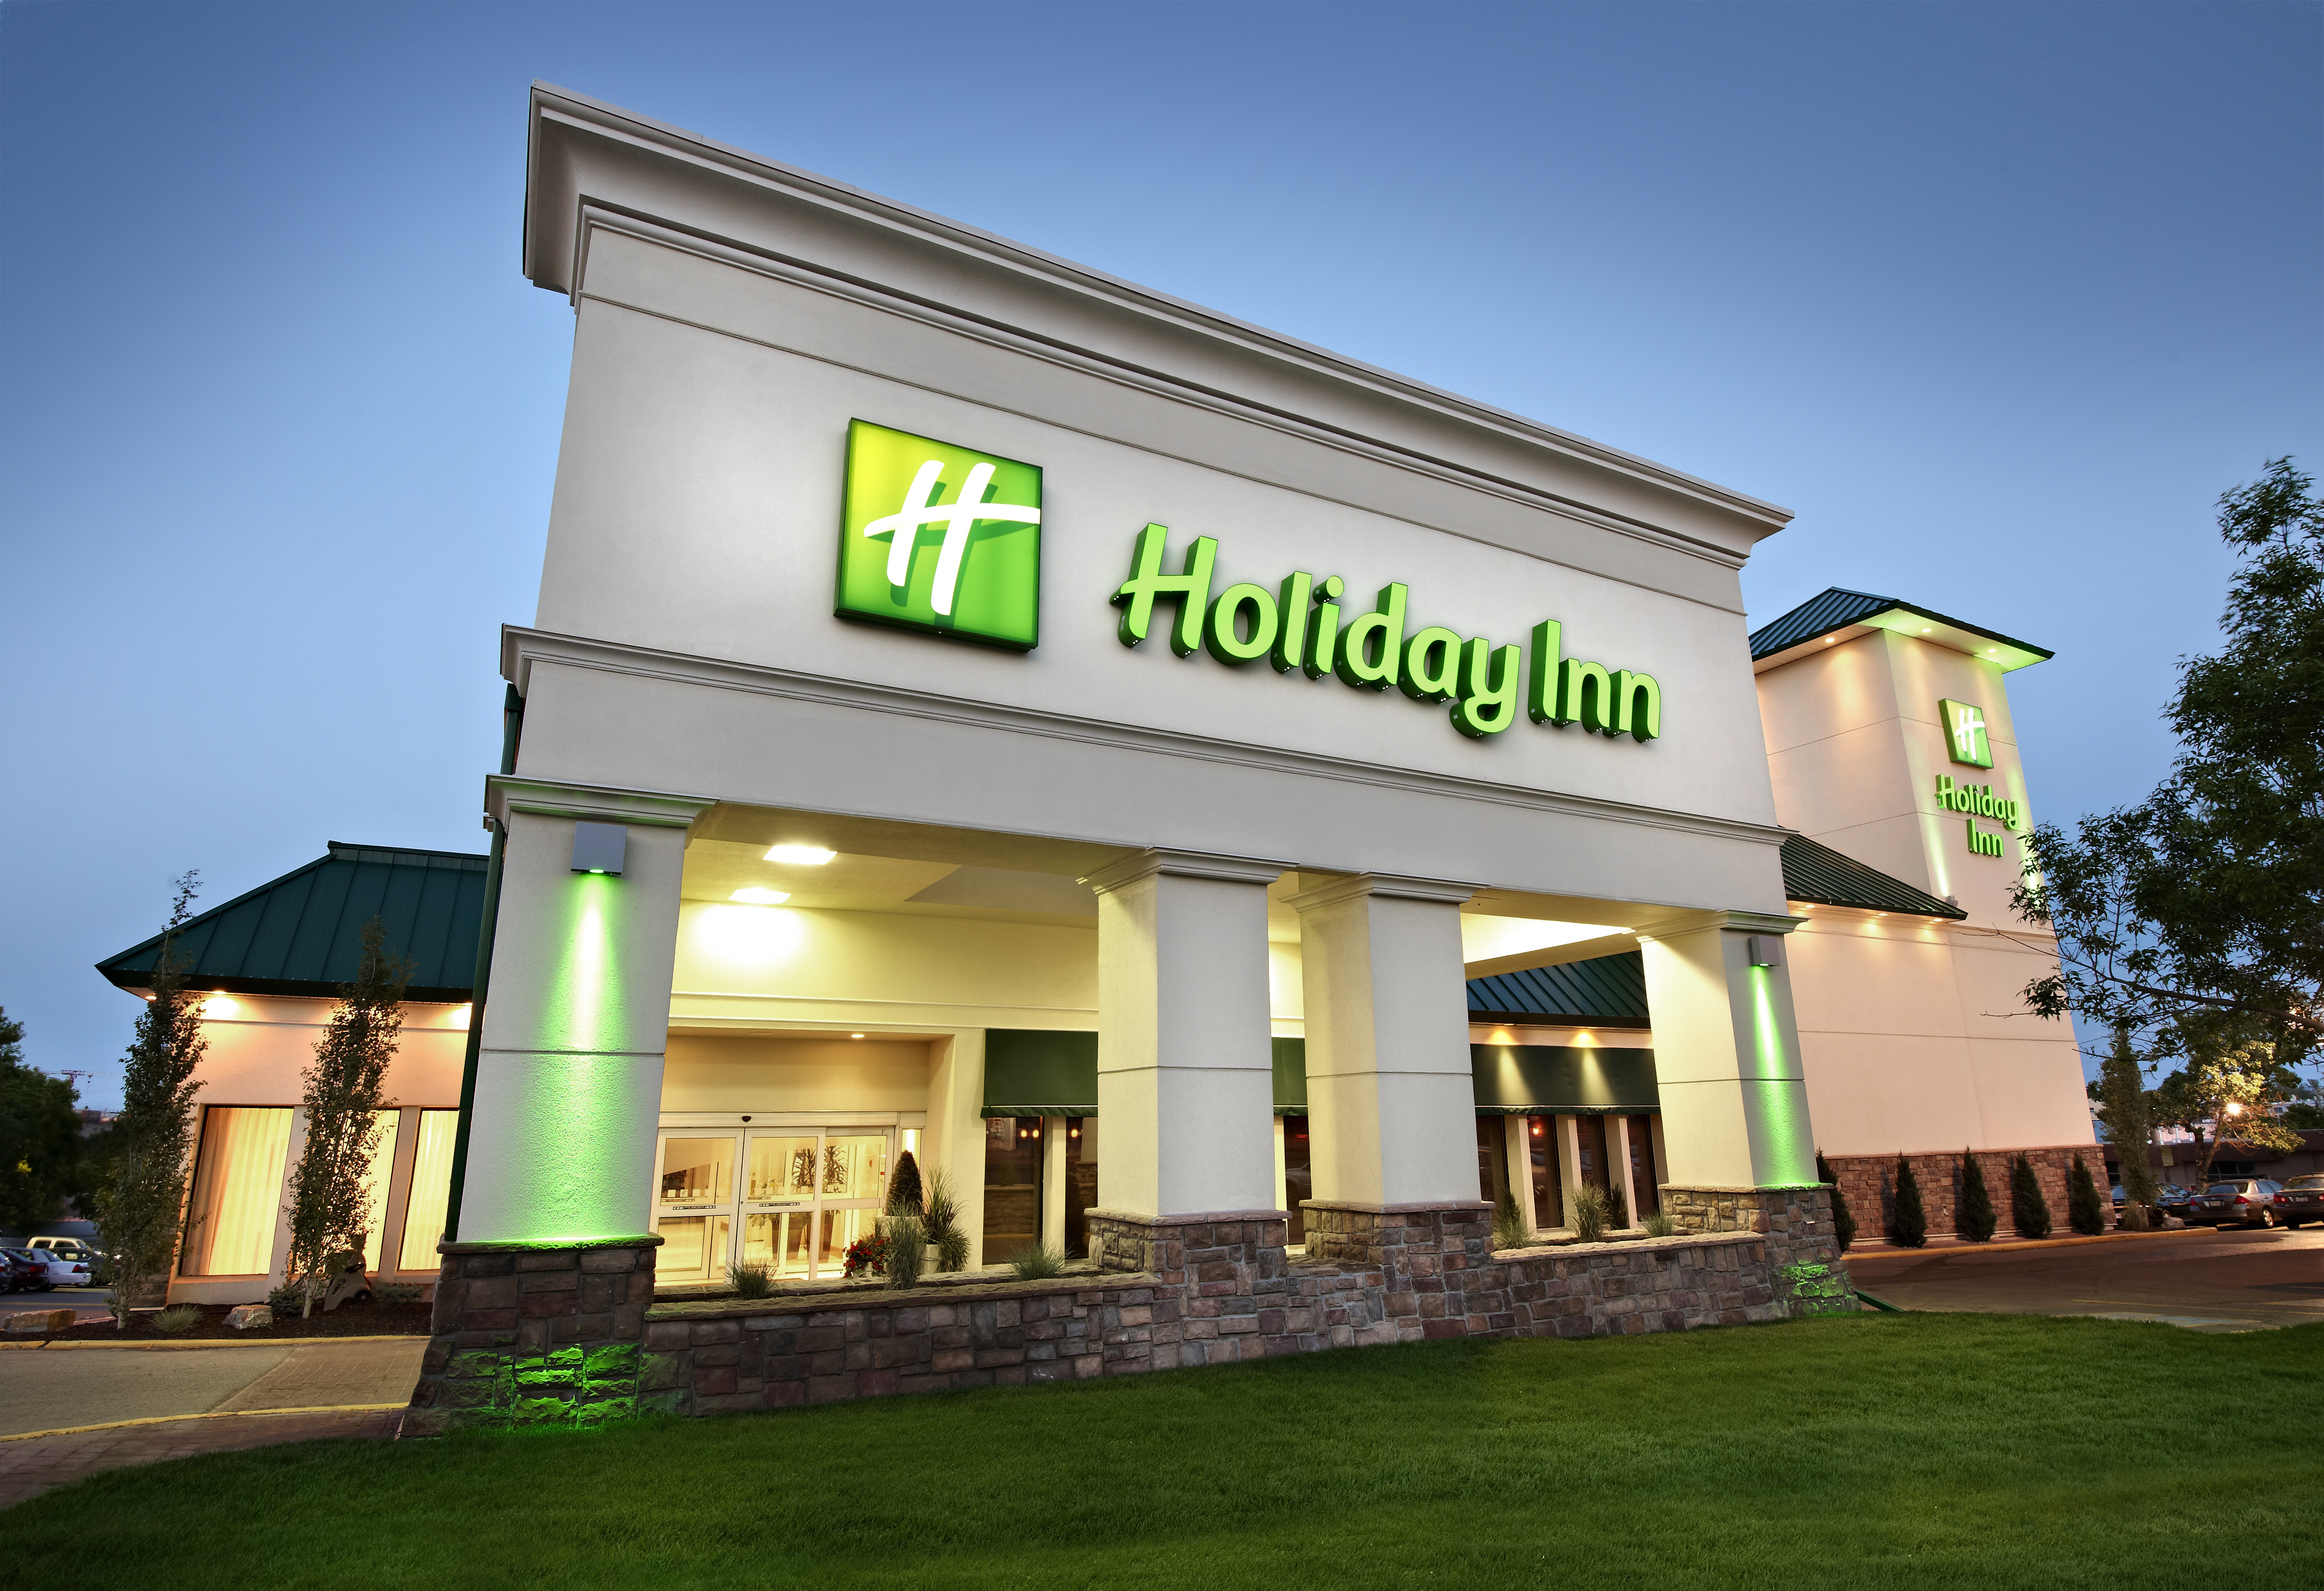 https://www.hotelsbyday.com/_data/default-hotel_image/2/10357/holiday-inn-calgary-9821-exterior1.jpg